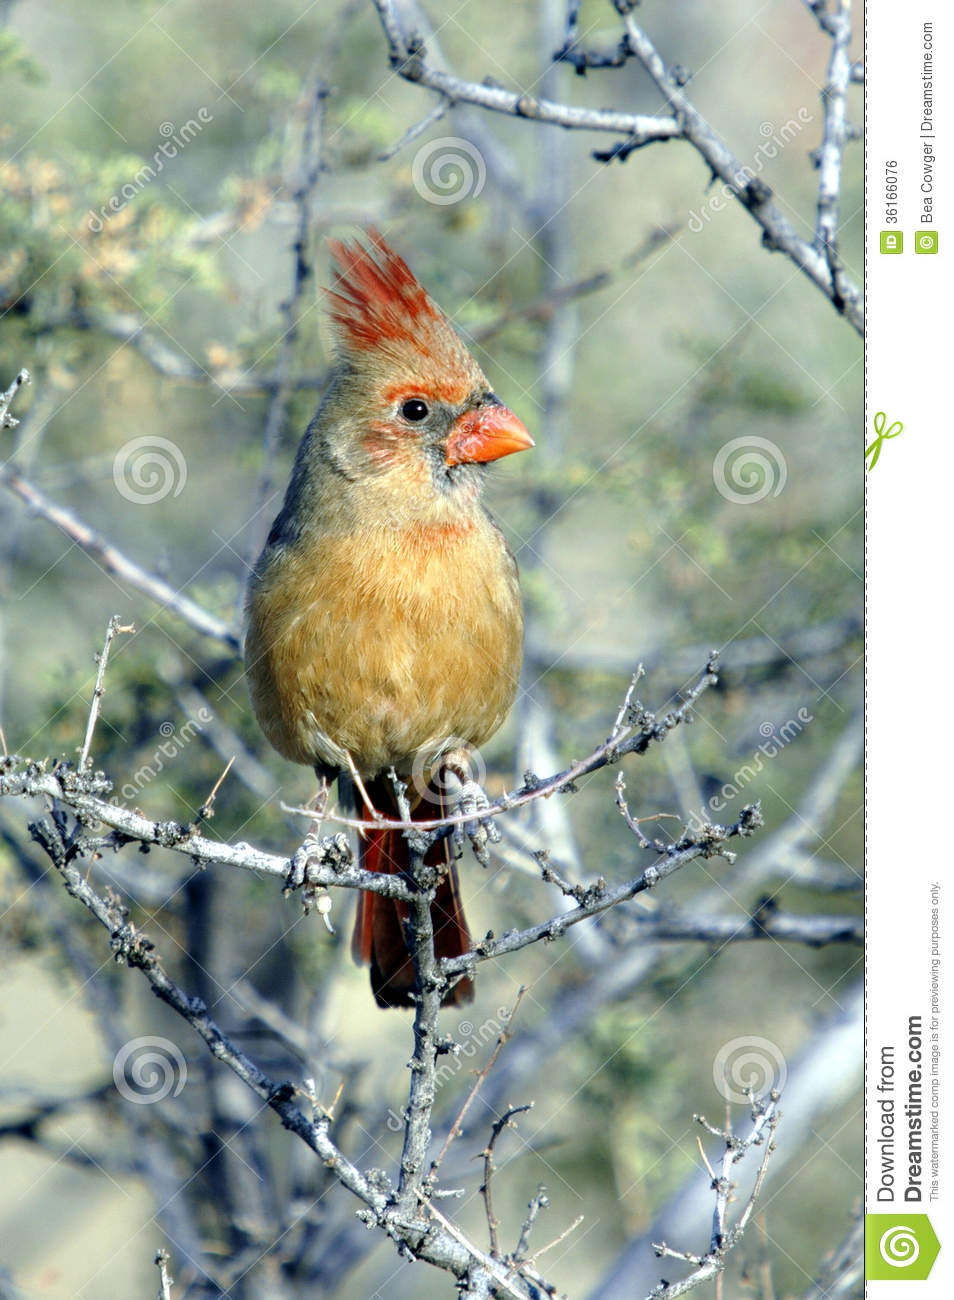 Cardinal red yellowish breast suggest